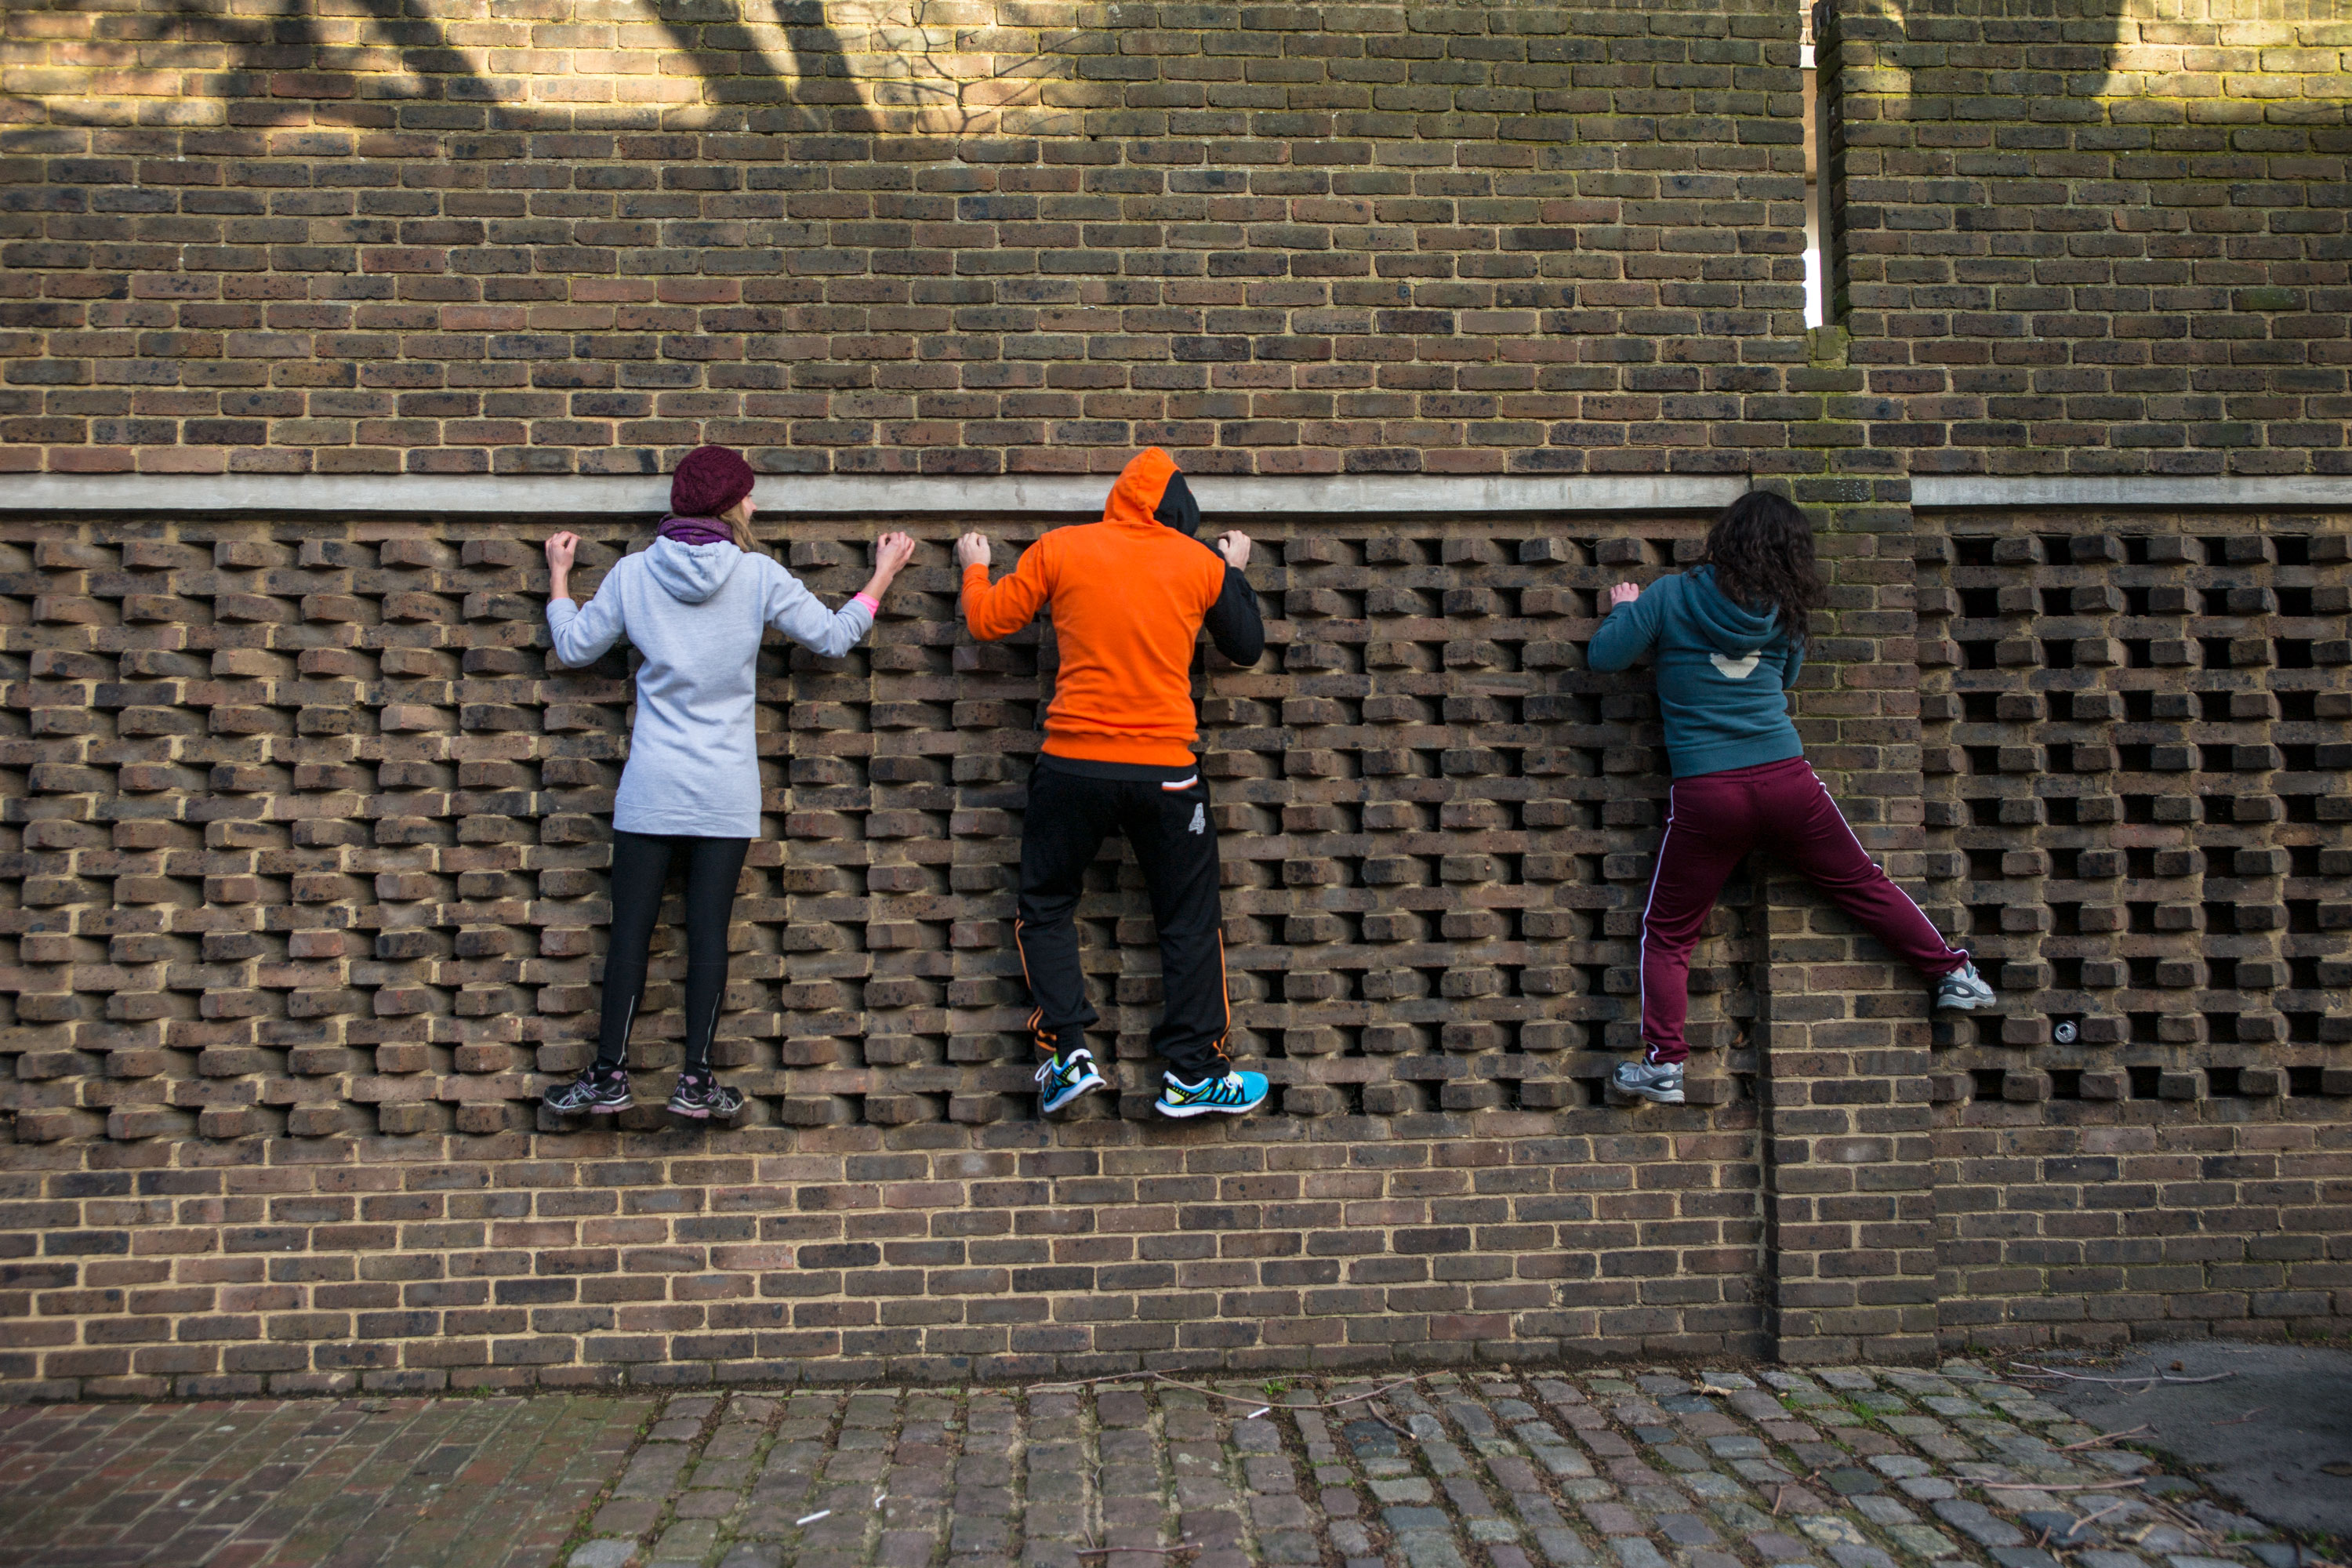 Wefew-clothing_Parkour-Freerunning_Classes_03